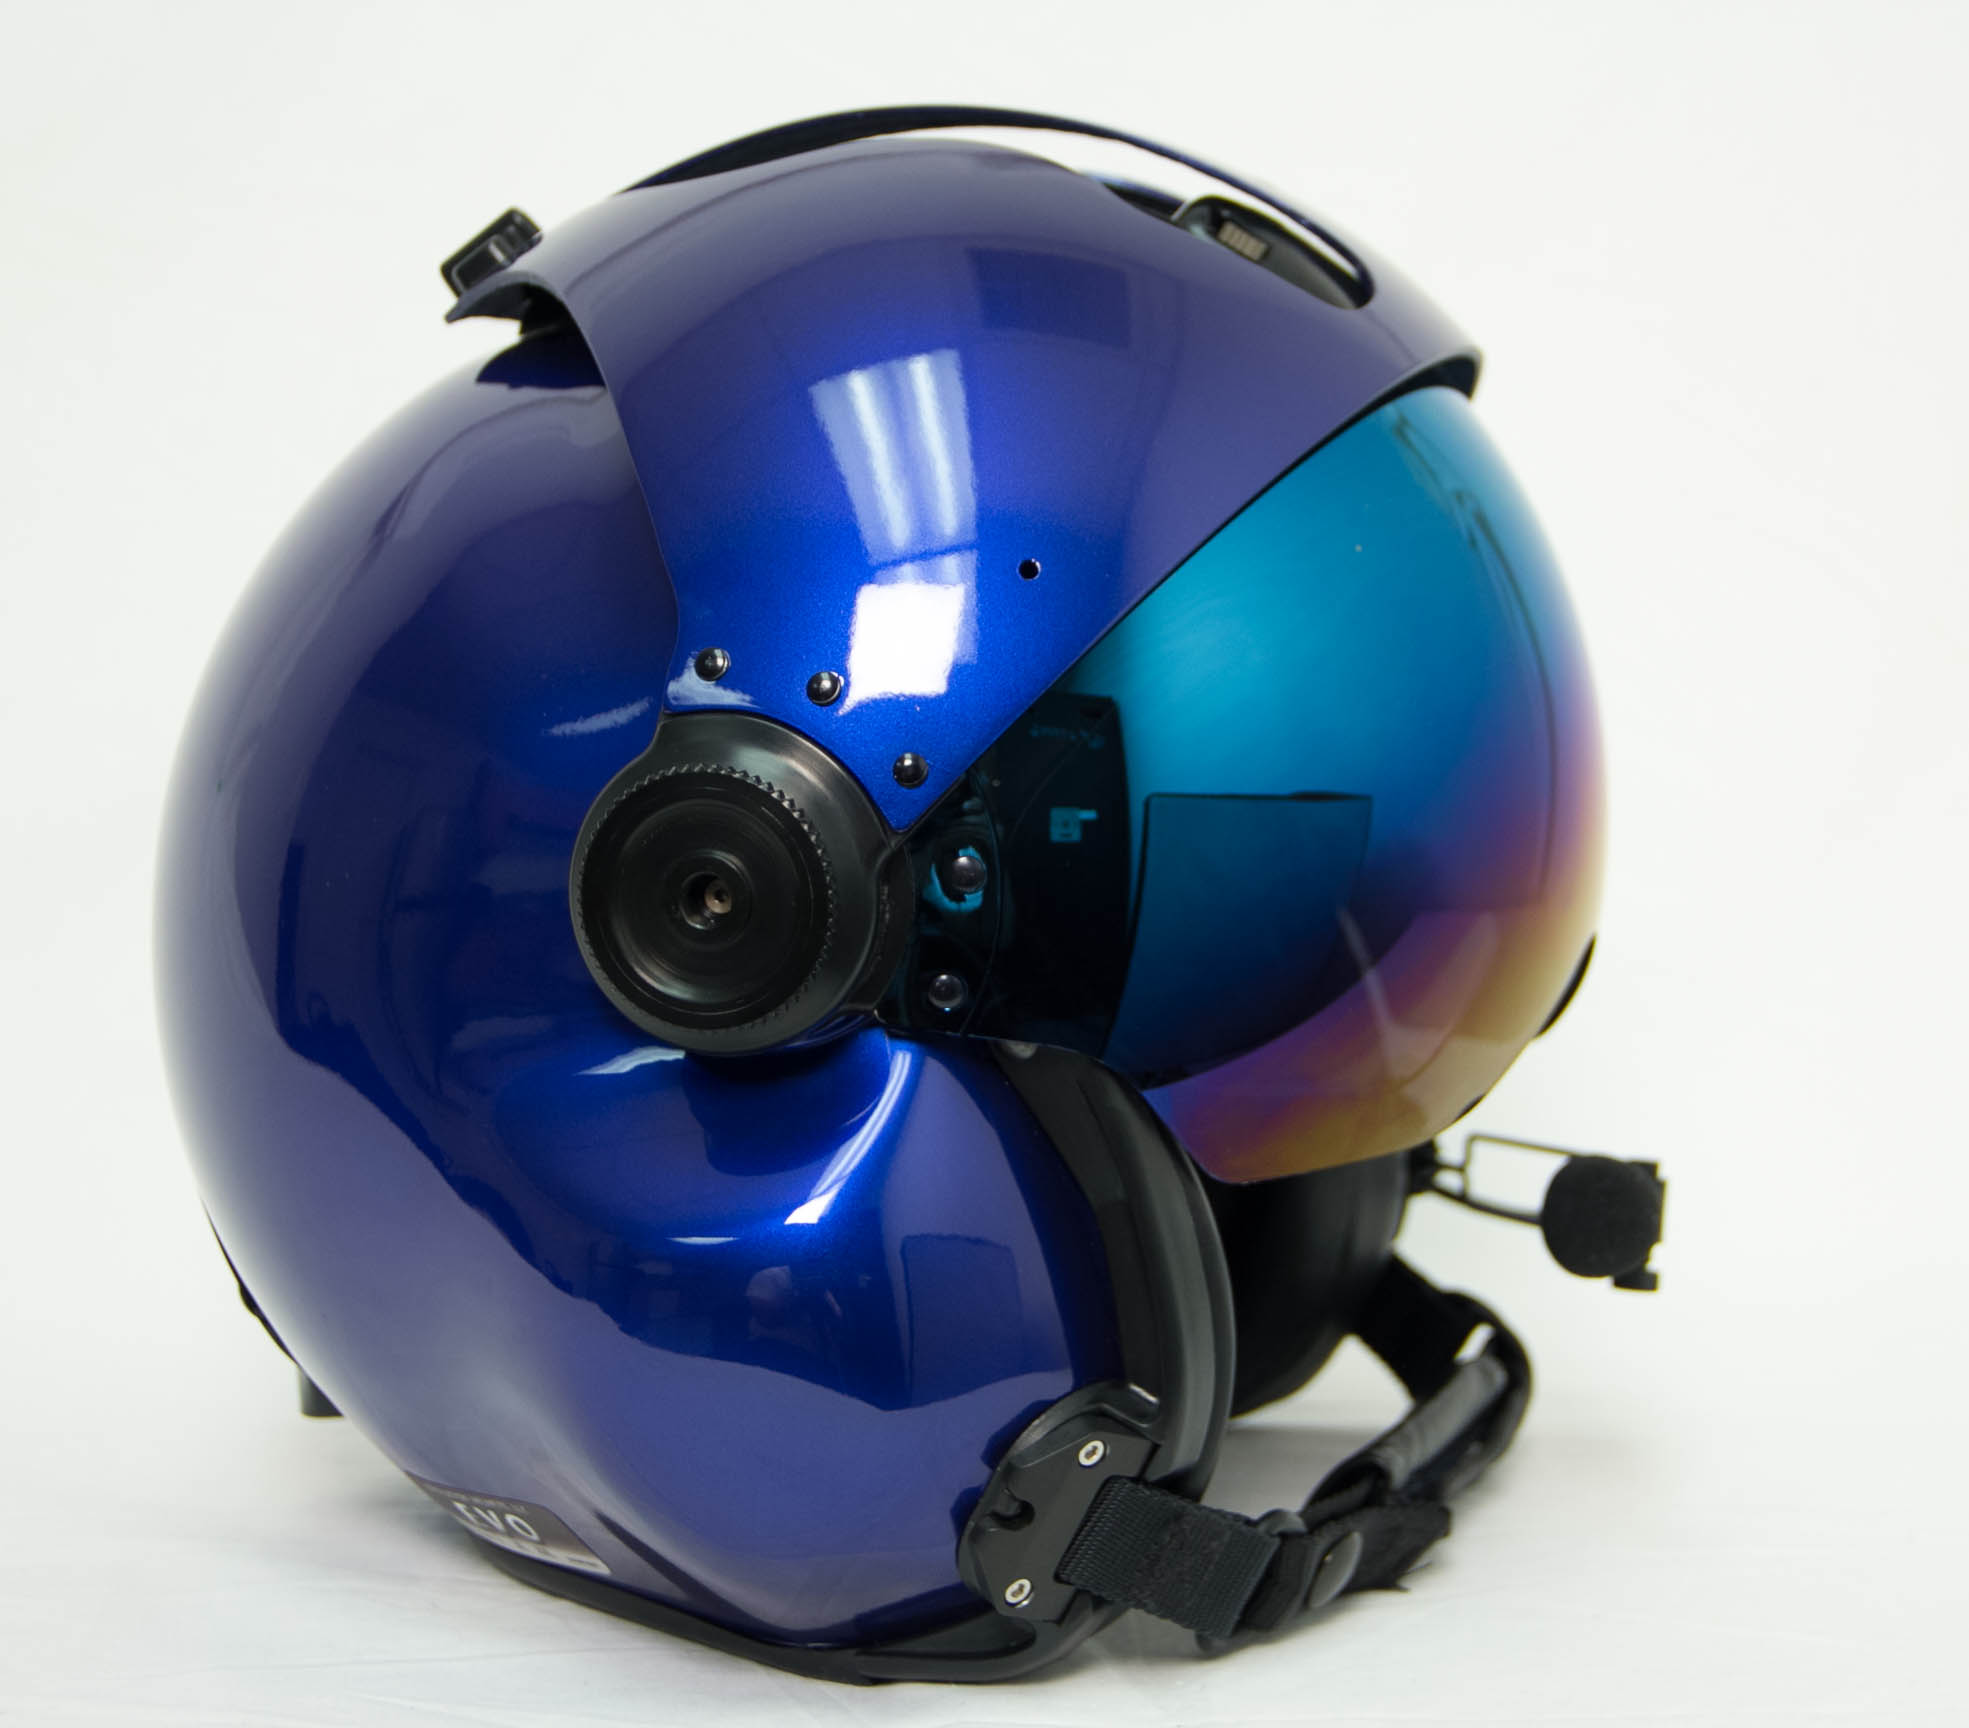 EVO 152 and 252 have completed the certification process under the NEW DOI Helmet standards.